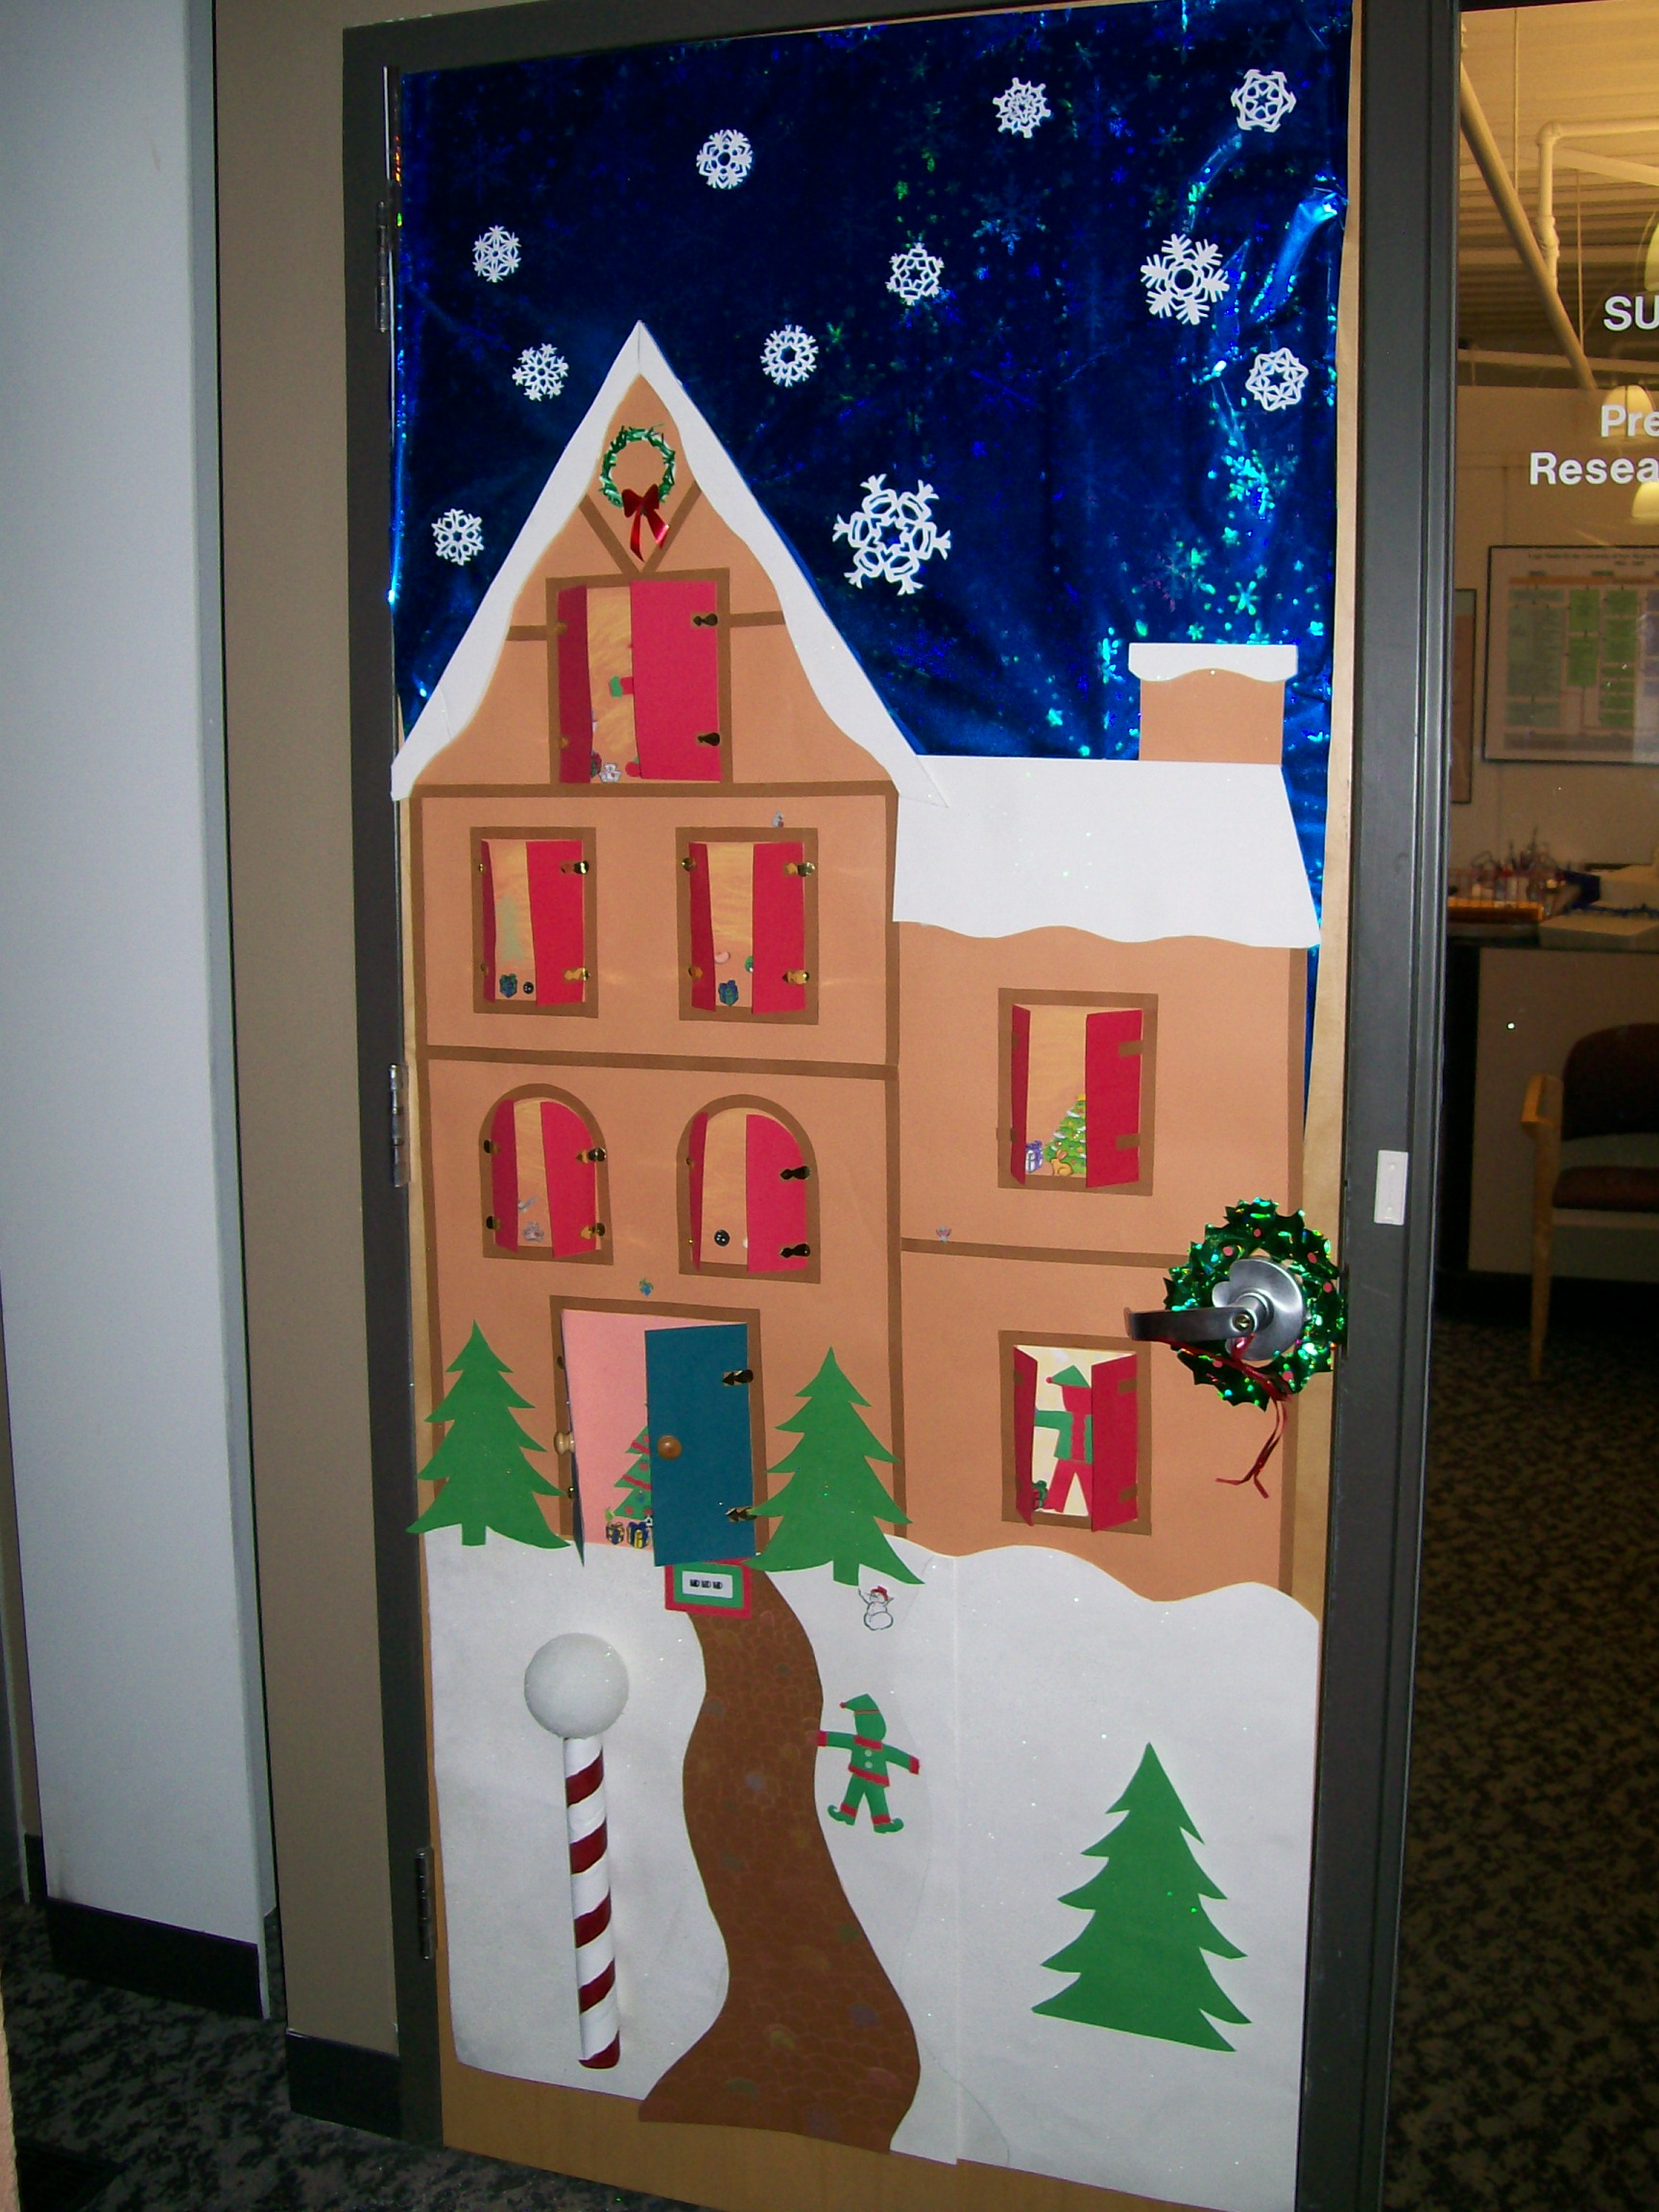 But a bigger question looms — w. Top 30 Office Christmas Decorating Ideas - Flawssy